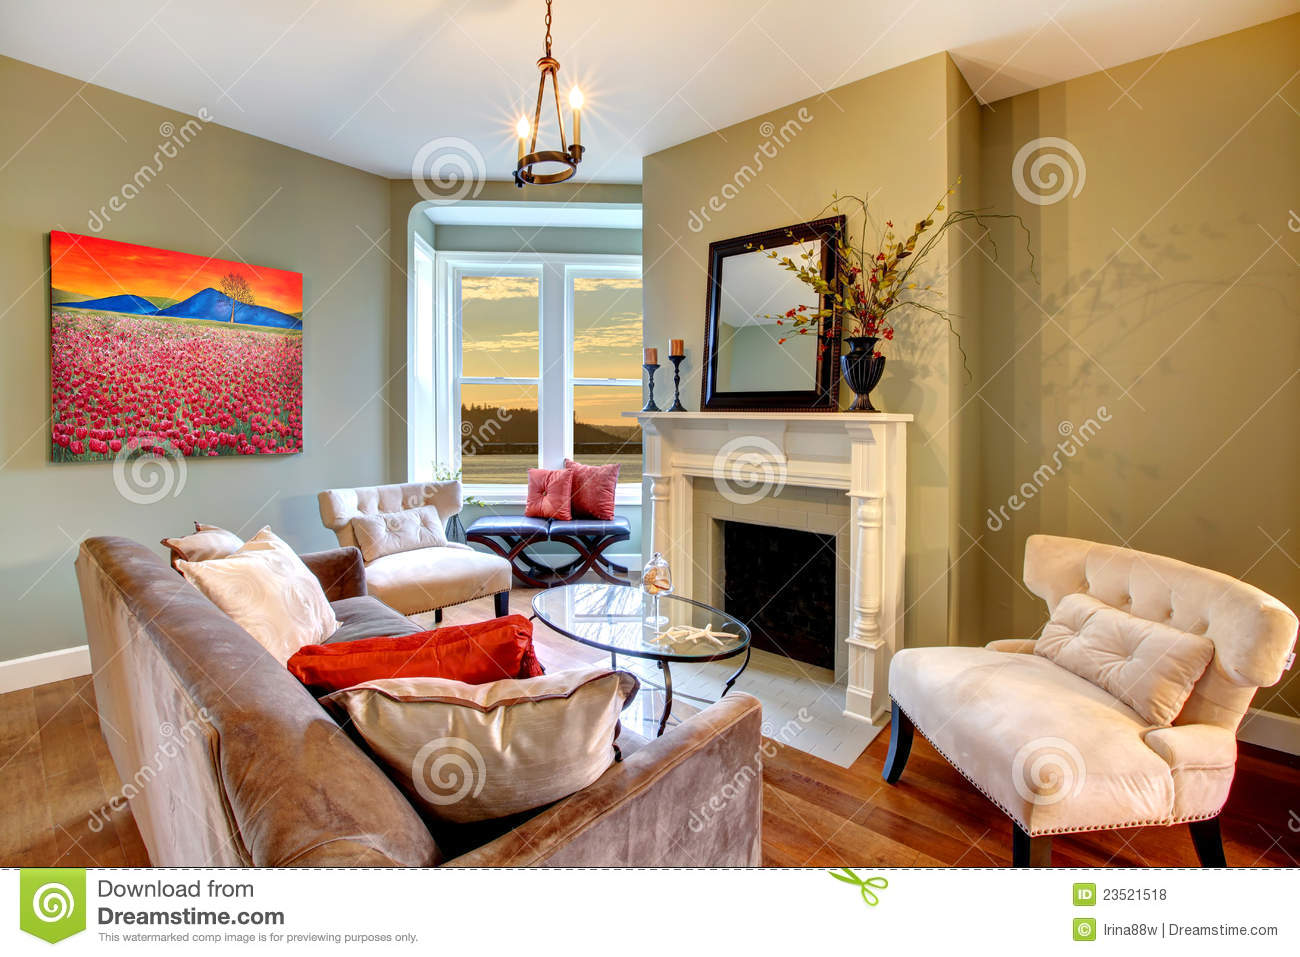 Stunning Green Living Room Walls Pictures   Amazing Design Ideas   Elegant Green Living Room Green Walls  Royalty Free Stock Photos  . Green Living Room Walls. Home Design Ideas